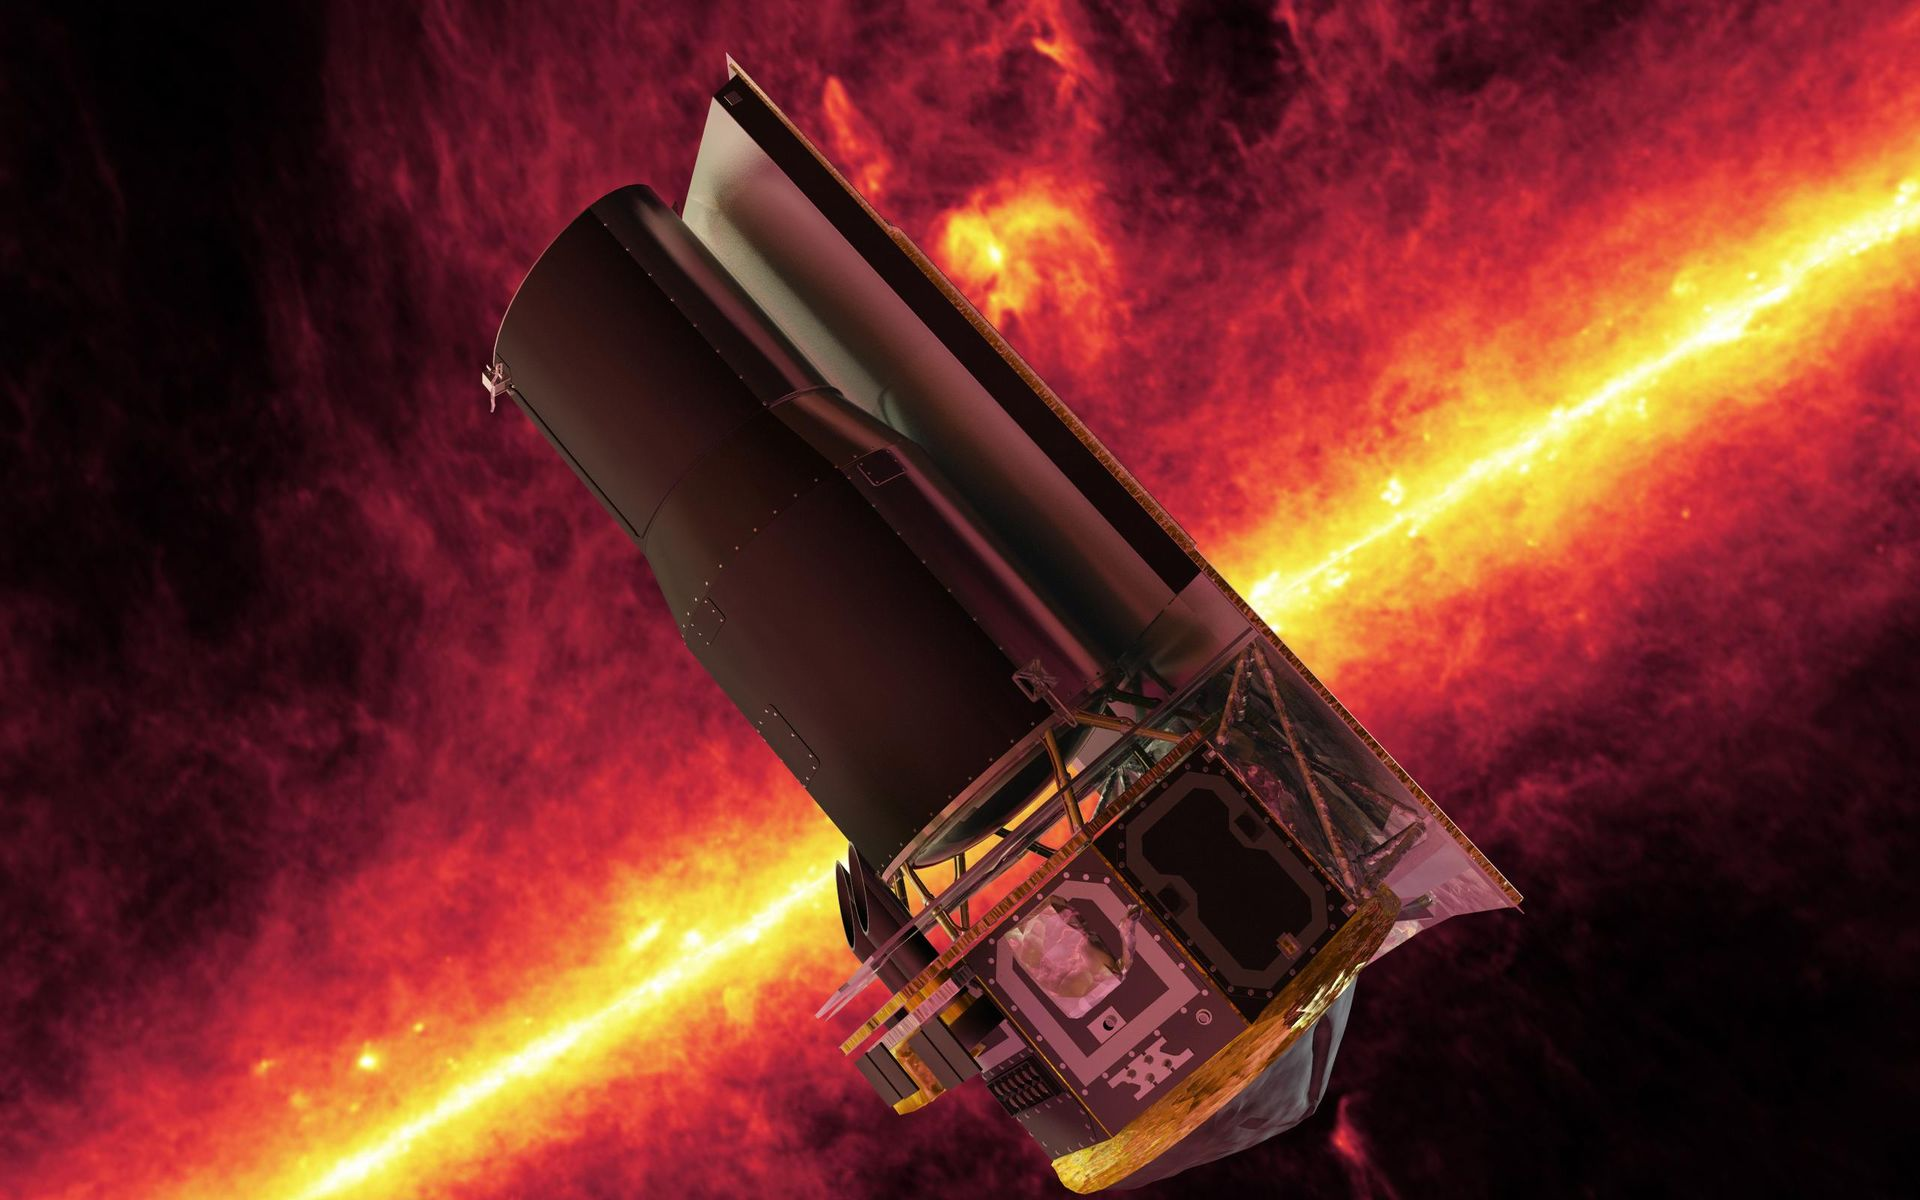 Missions Spitzer Space Telescope